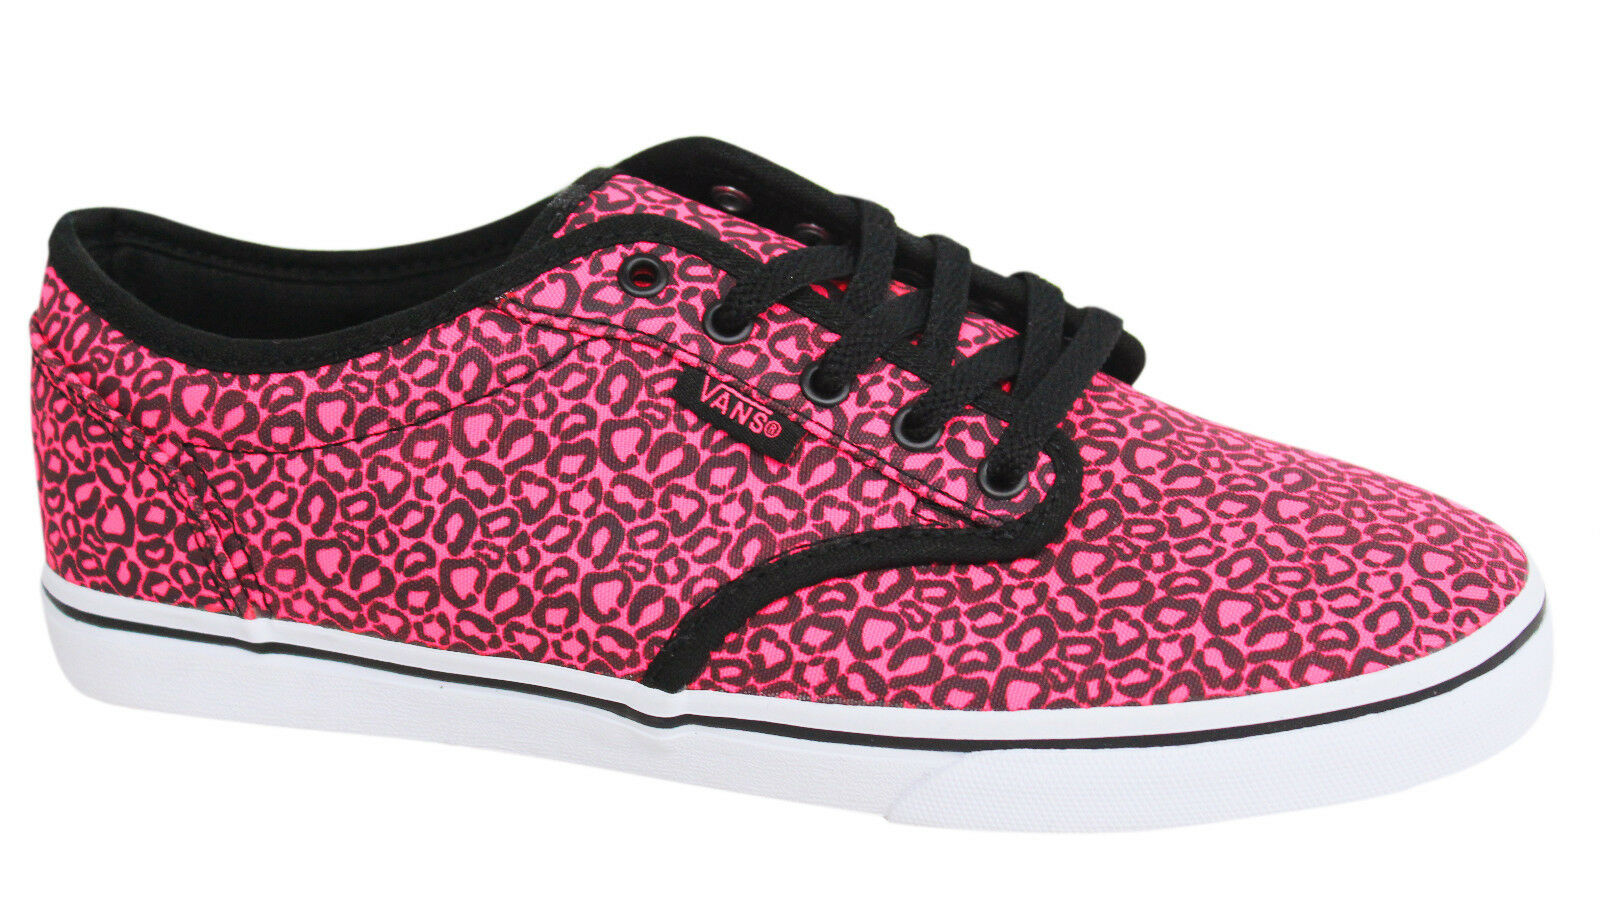 vans atwood donna nere